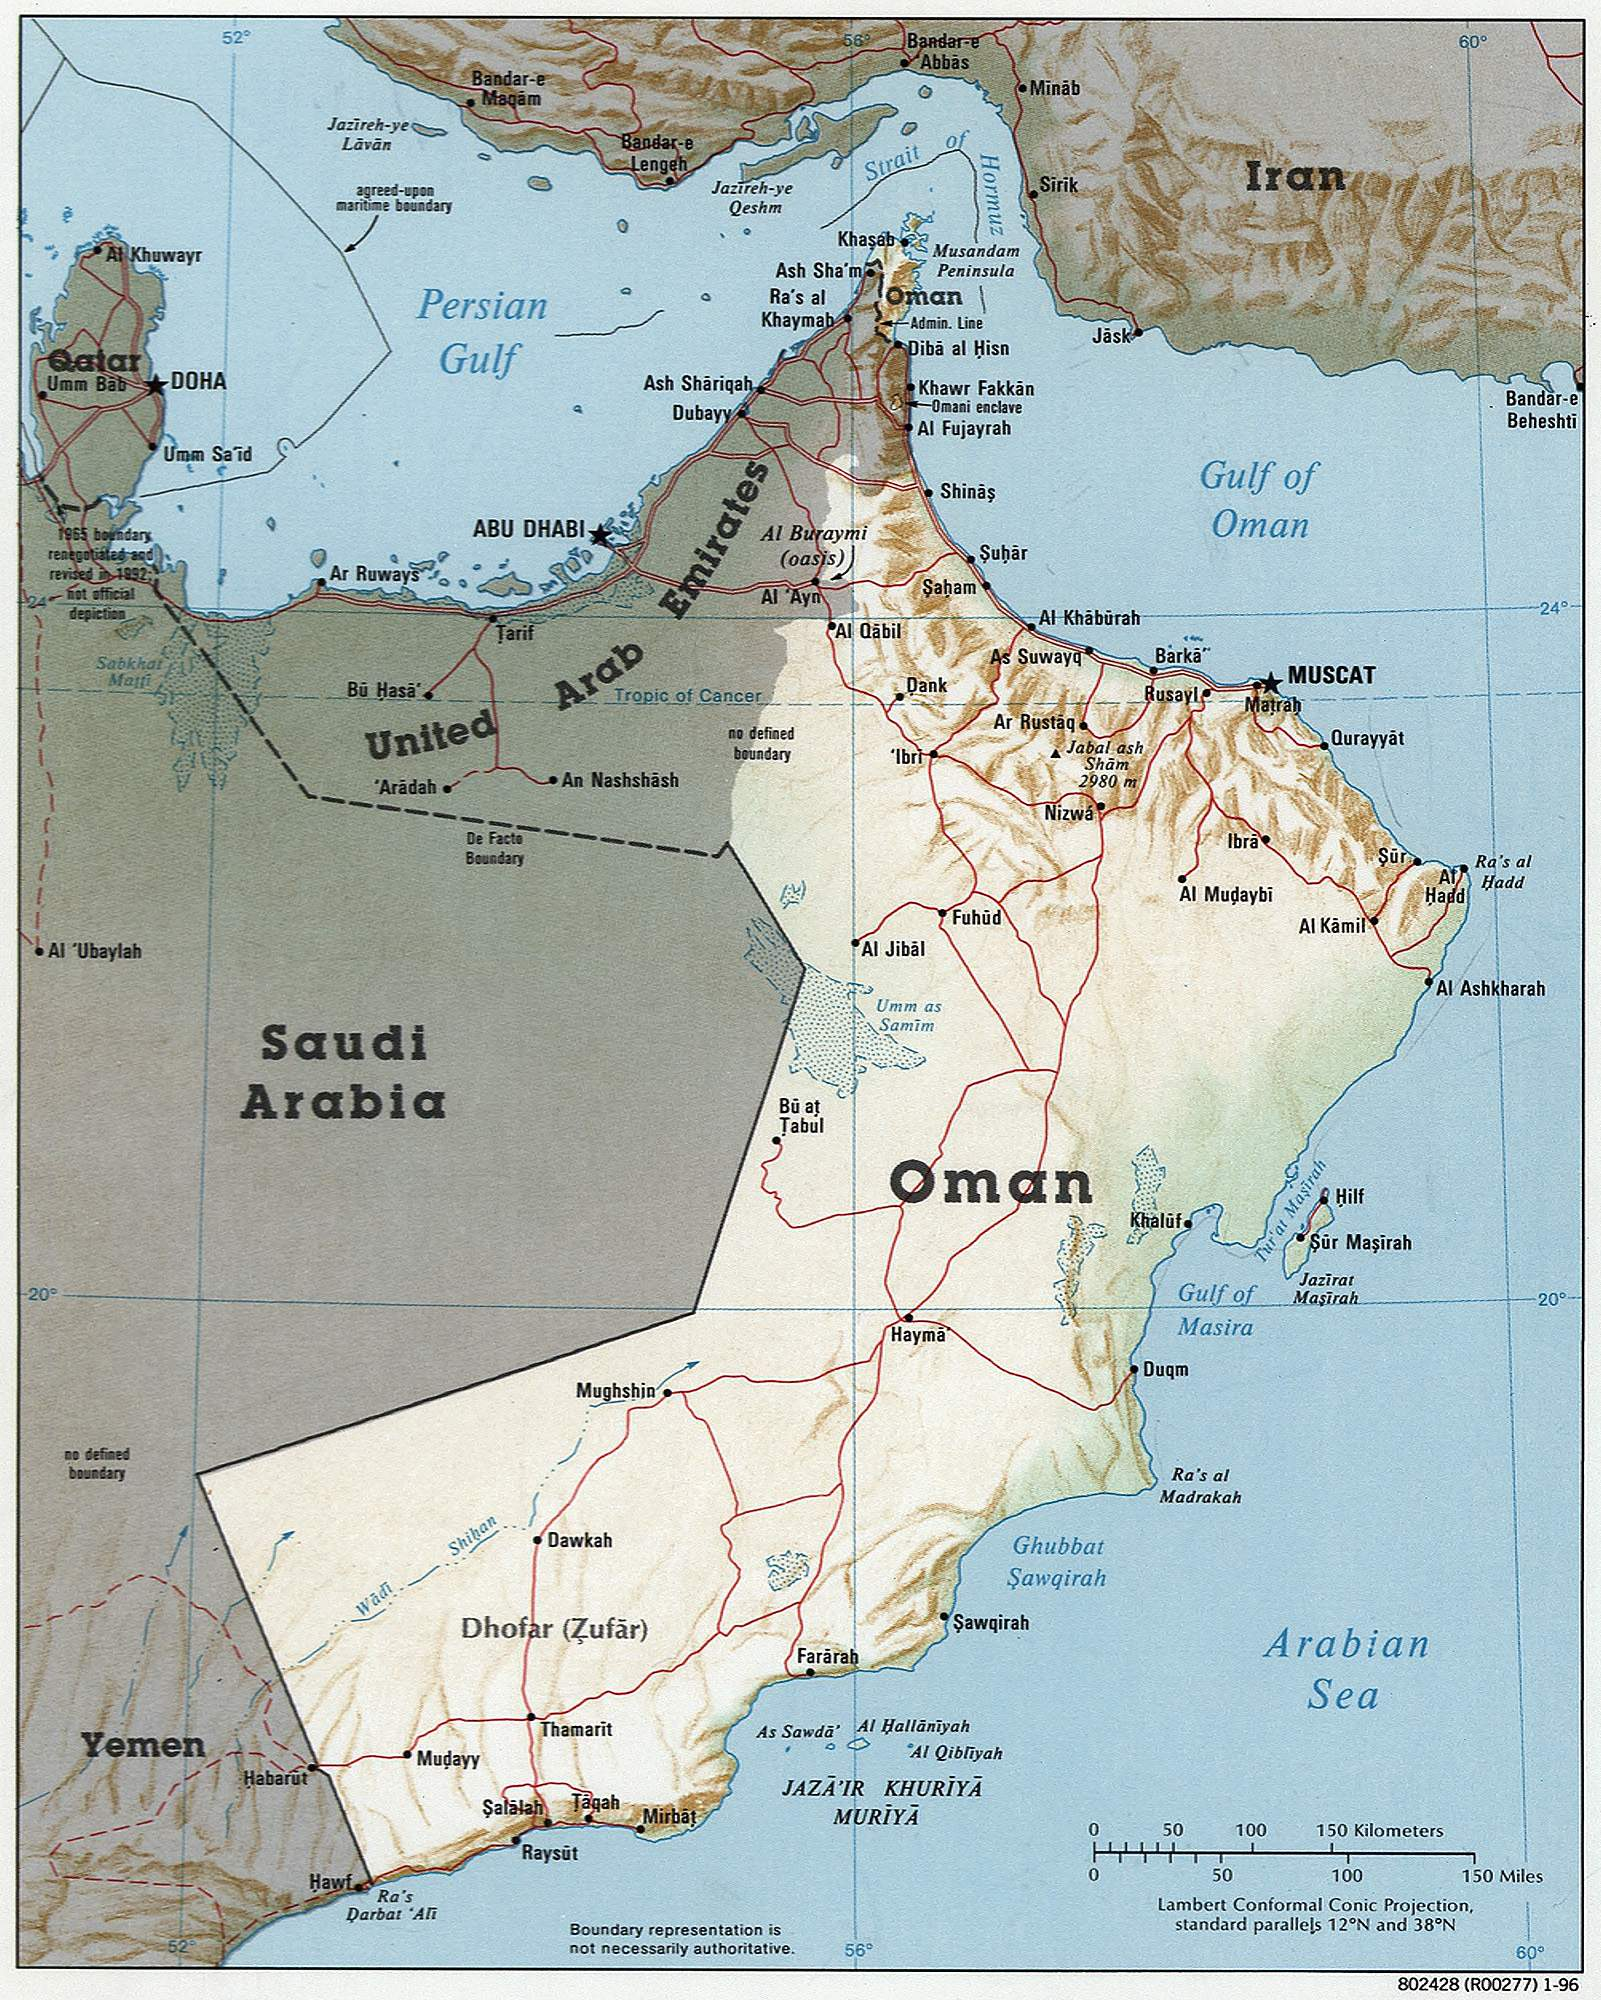 Oman 1996 Cia Map large map